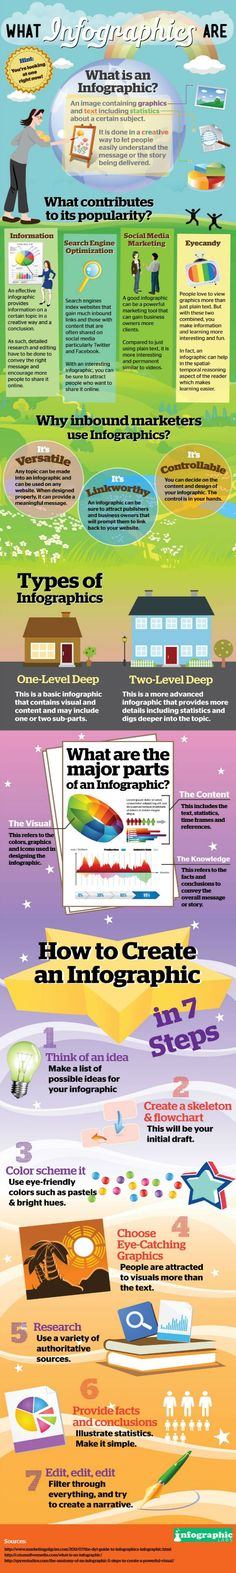 An infographic about infographics.